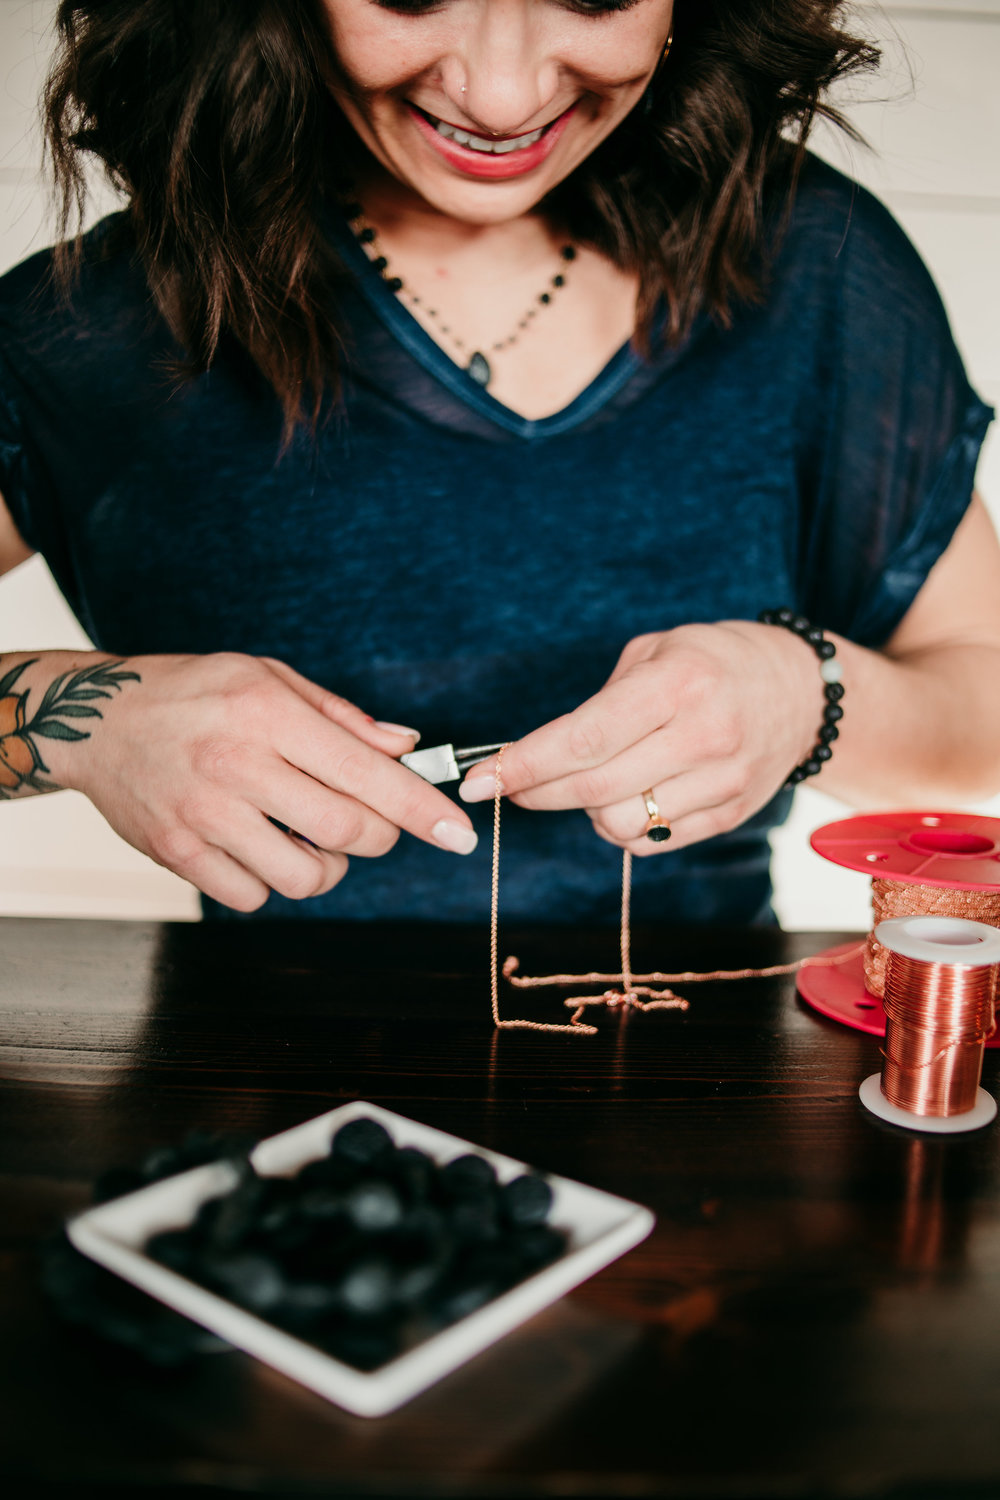 HANDMADE GOODNESS  -  Our diffuser jewelry is unique, fun, and interactive; and all 100% handcrafted in white bear lake, mn. hypoallergenic, and easy-to-wear, they will quickly become your favorite go-to pieces.